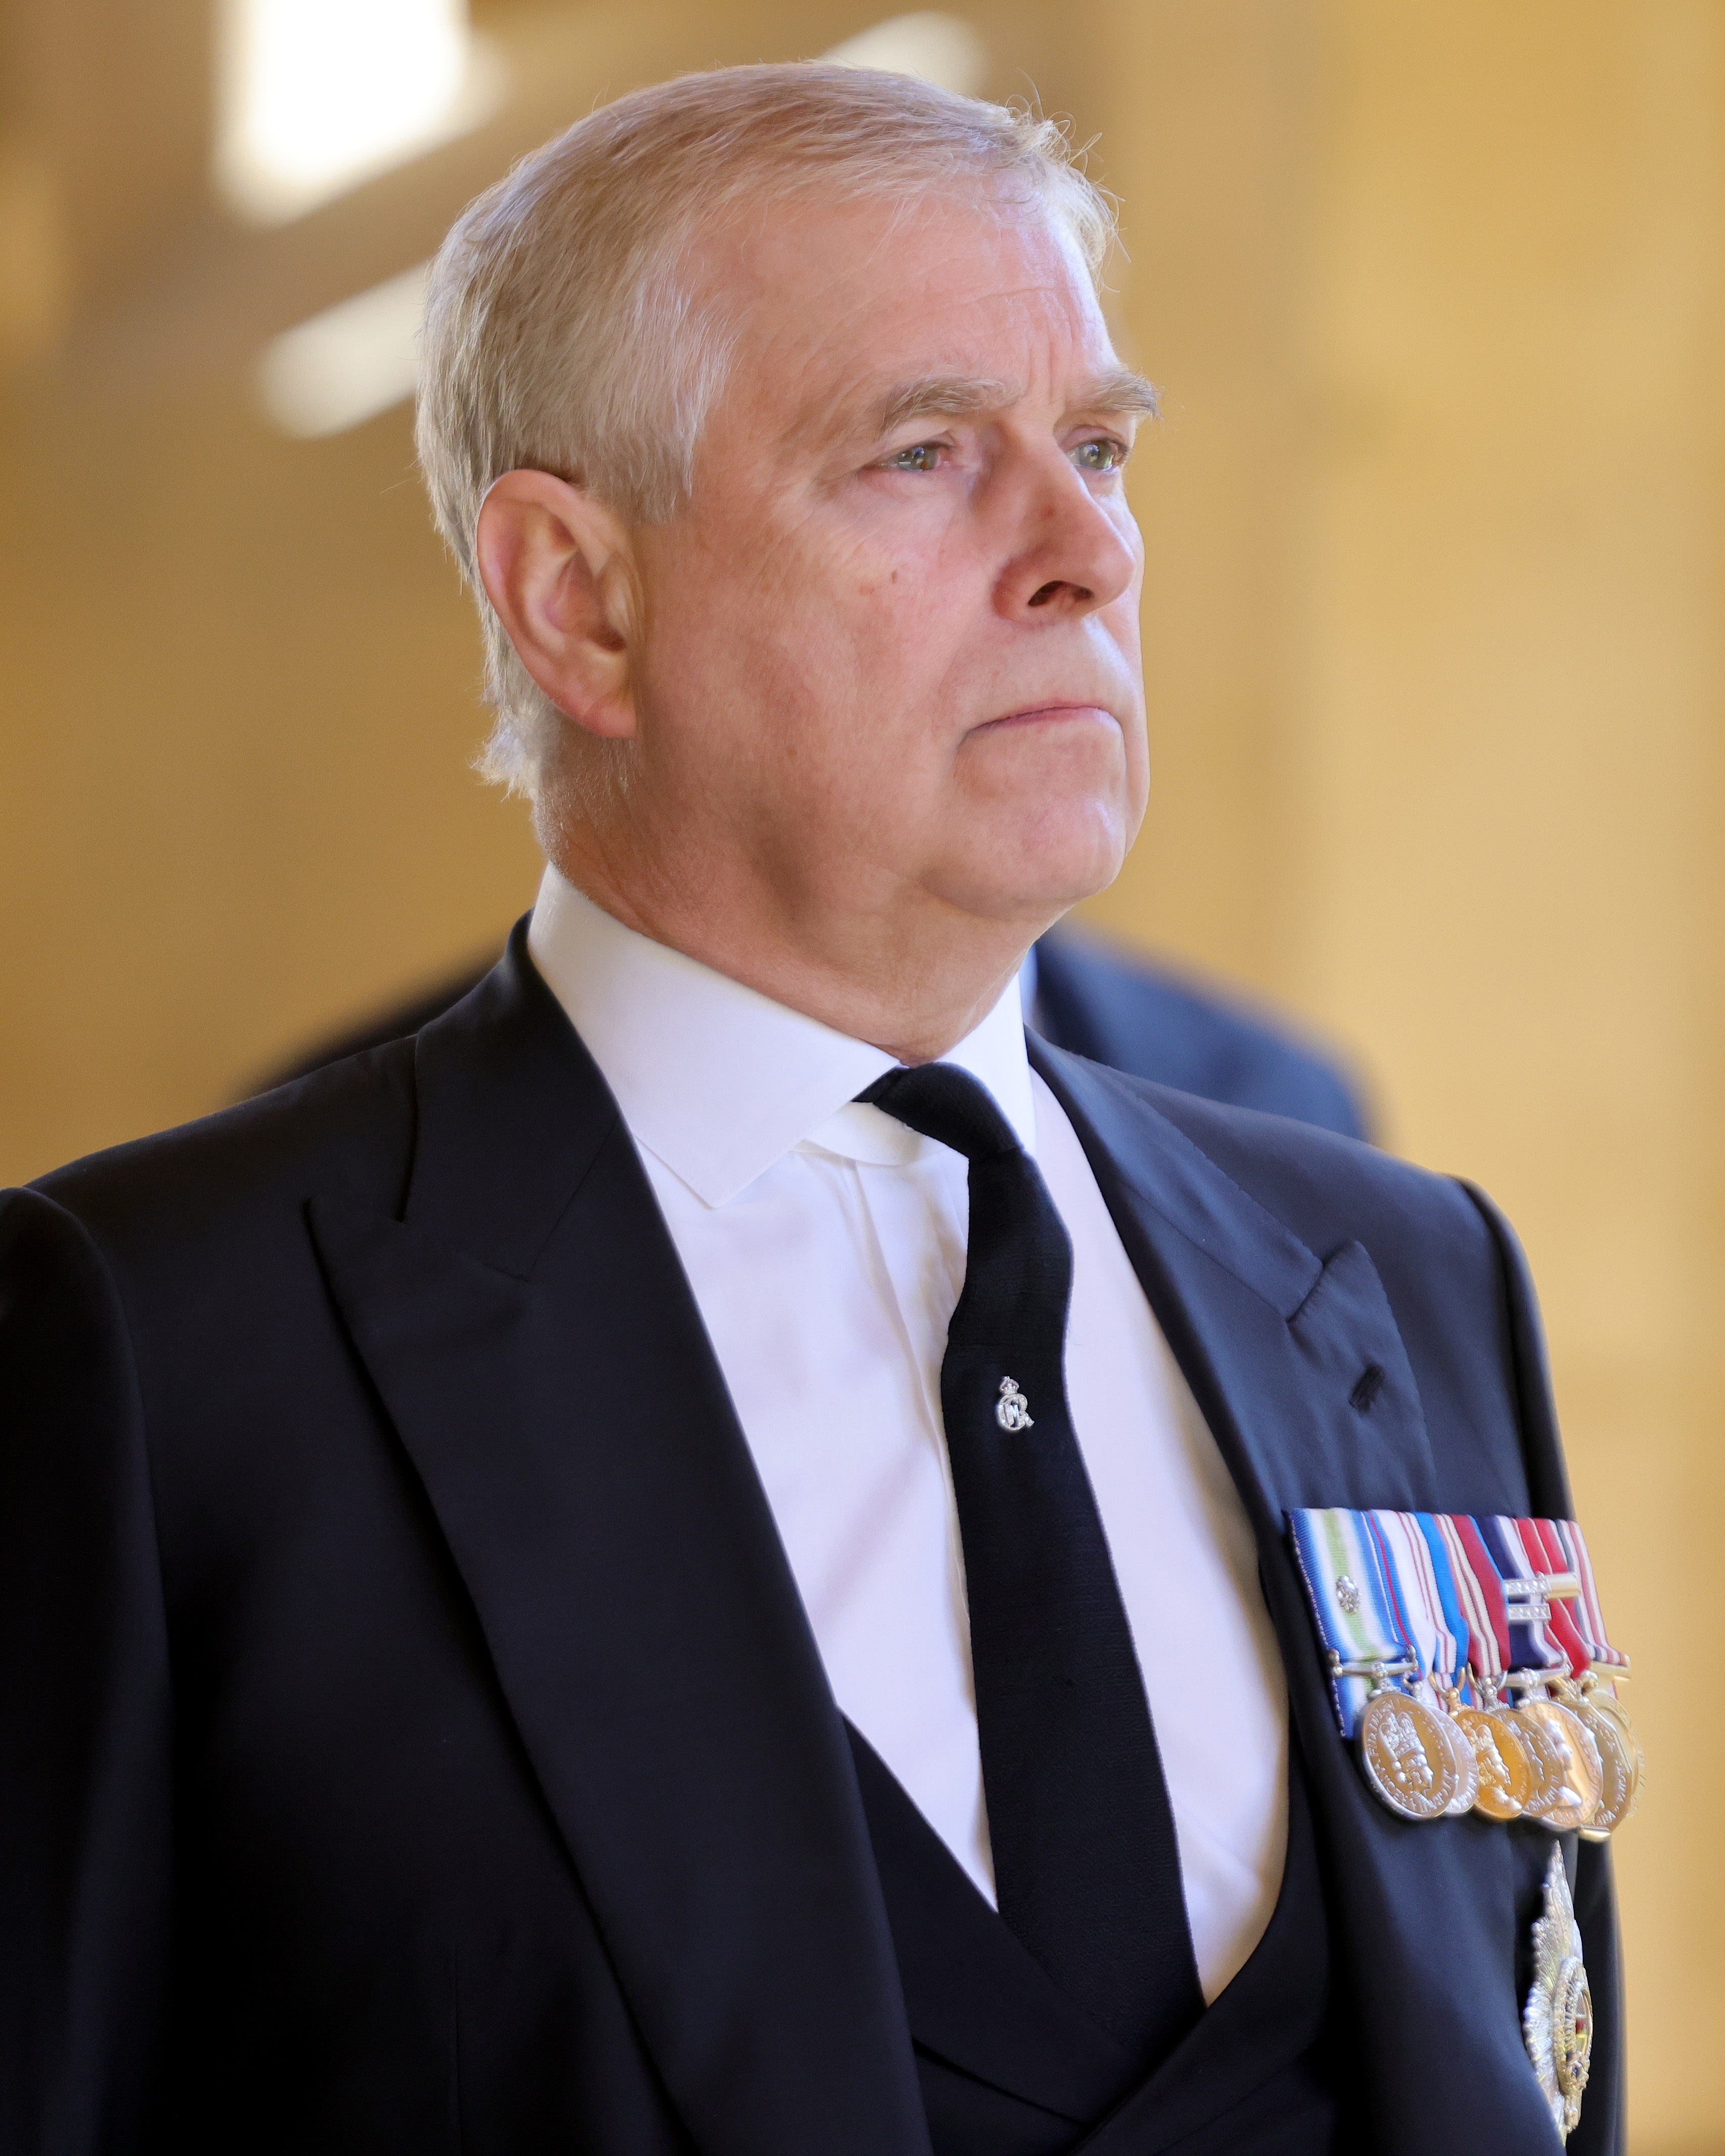 Prince Andrew Prince Philip funeral